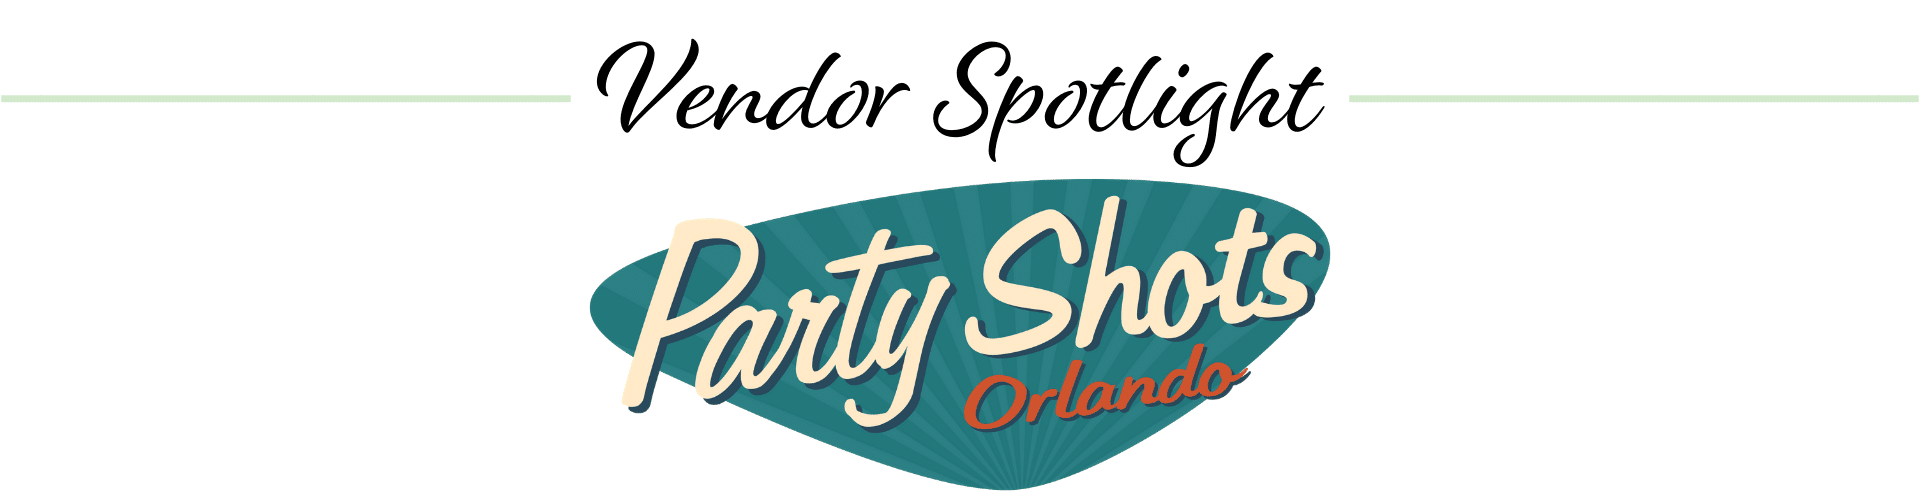 Party shots Orlando logo